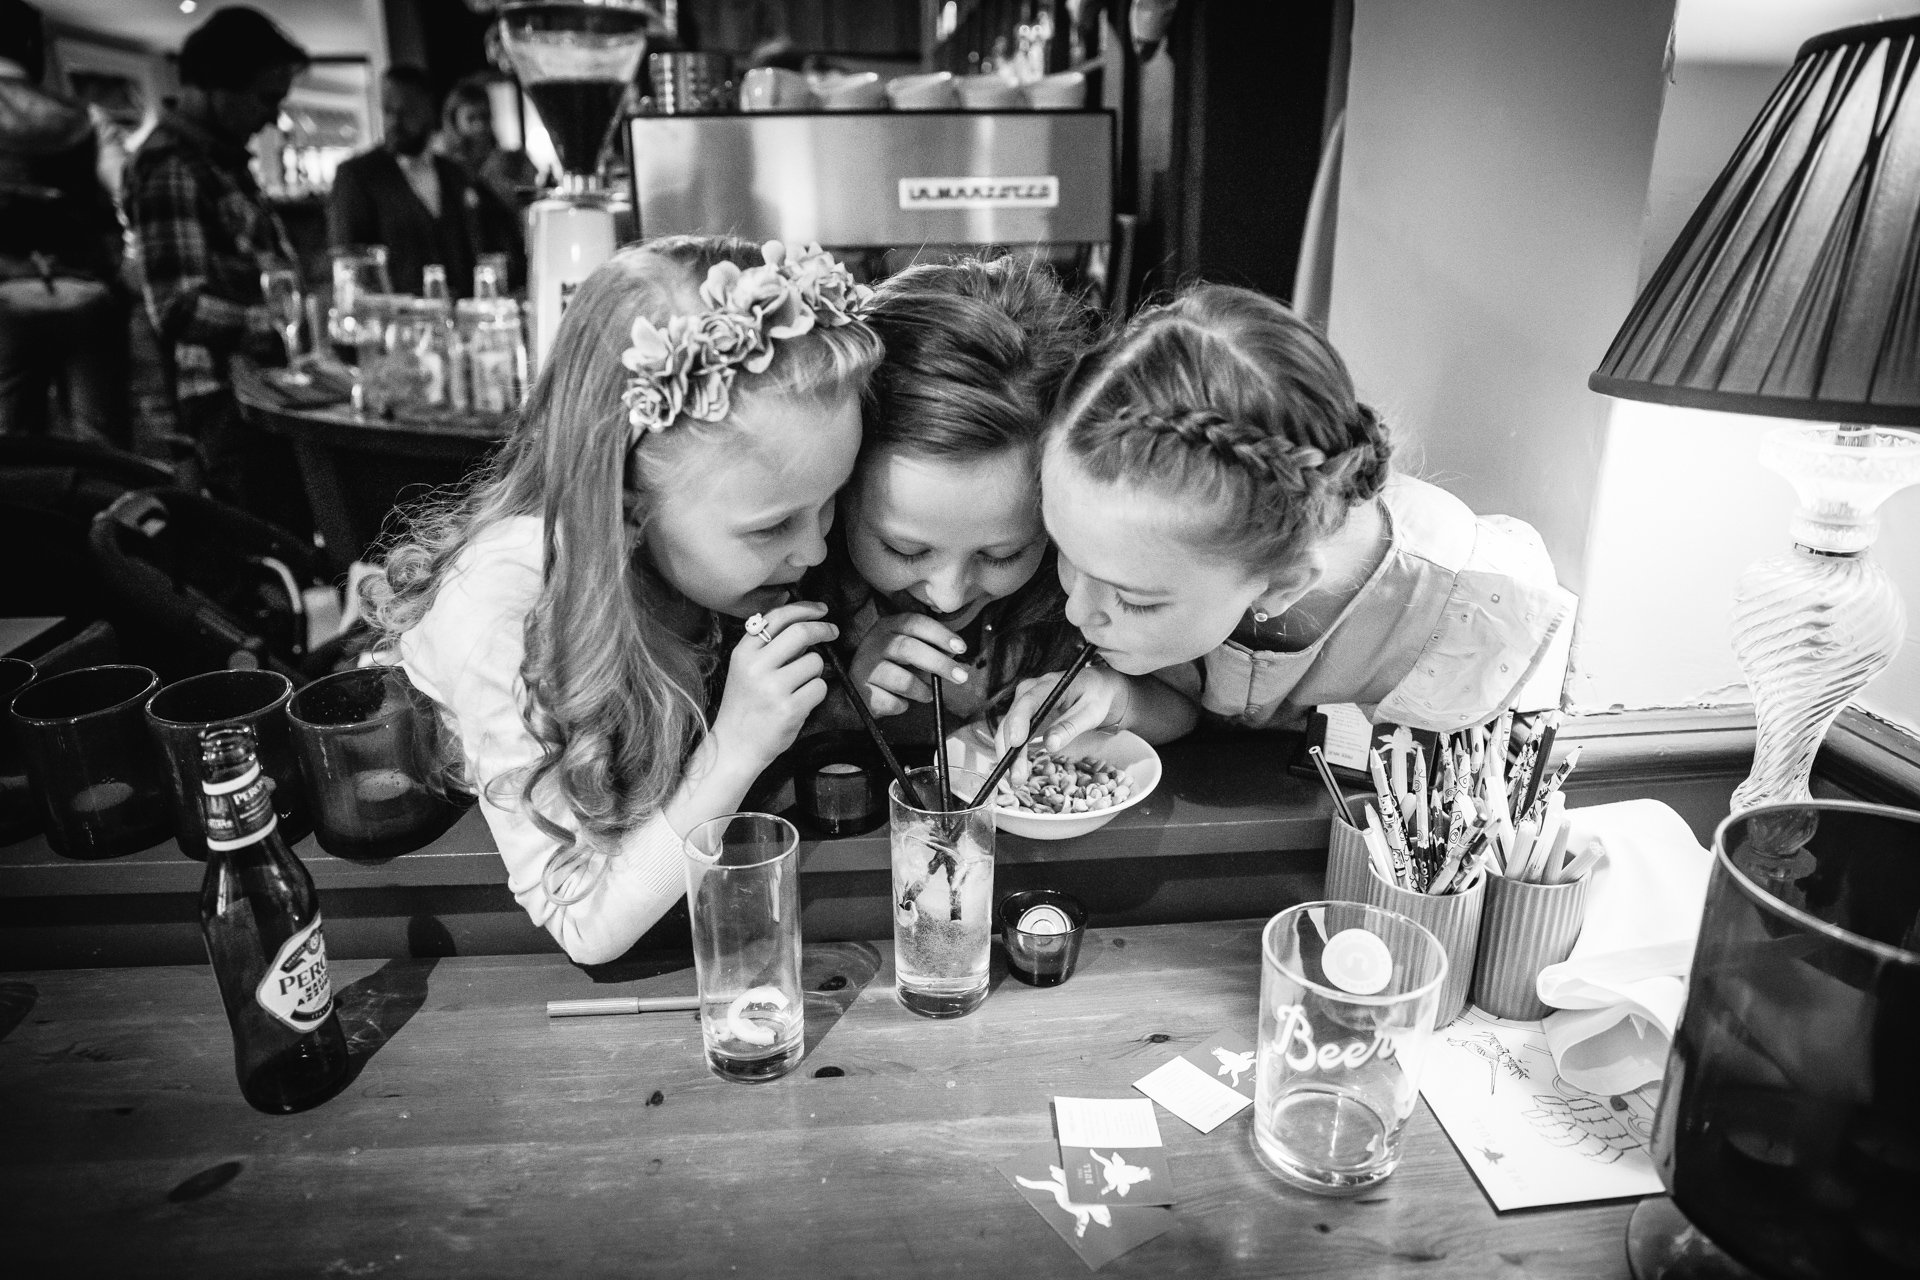 Three girls blowing bubbles into their drink at Wedding reception